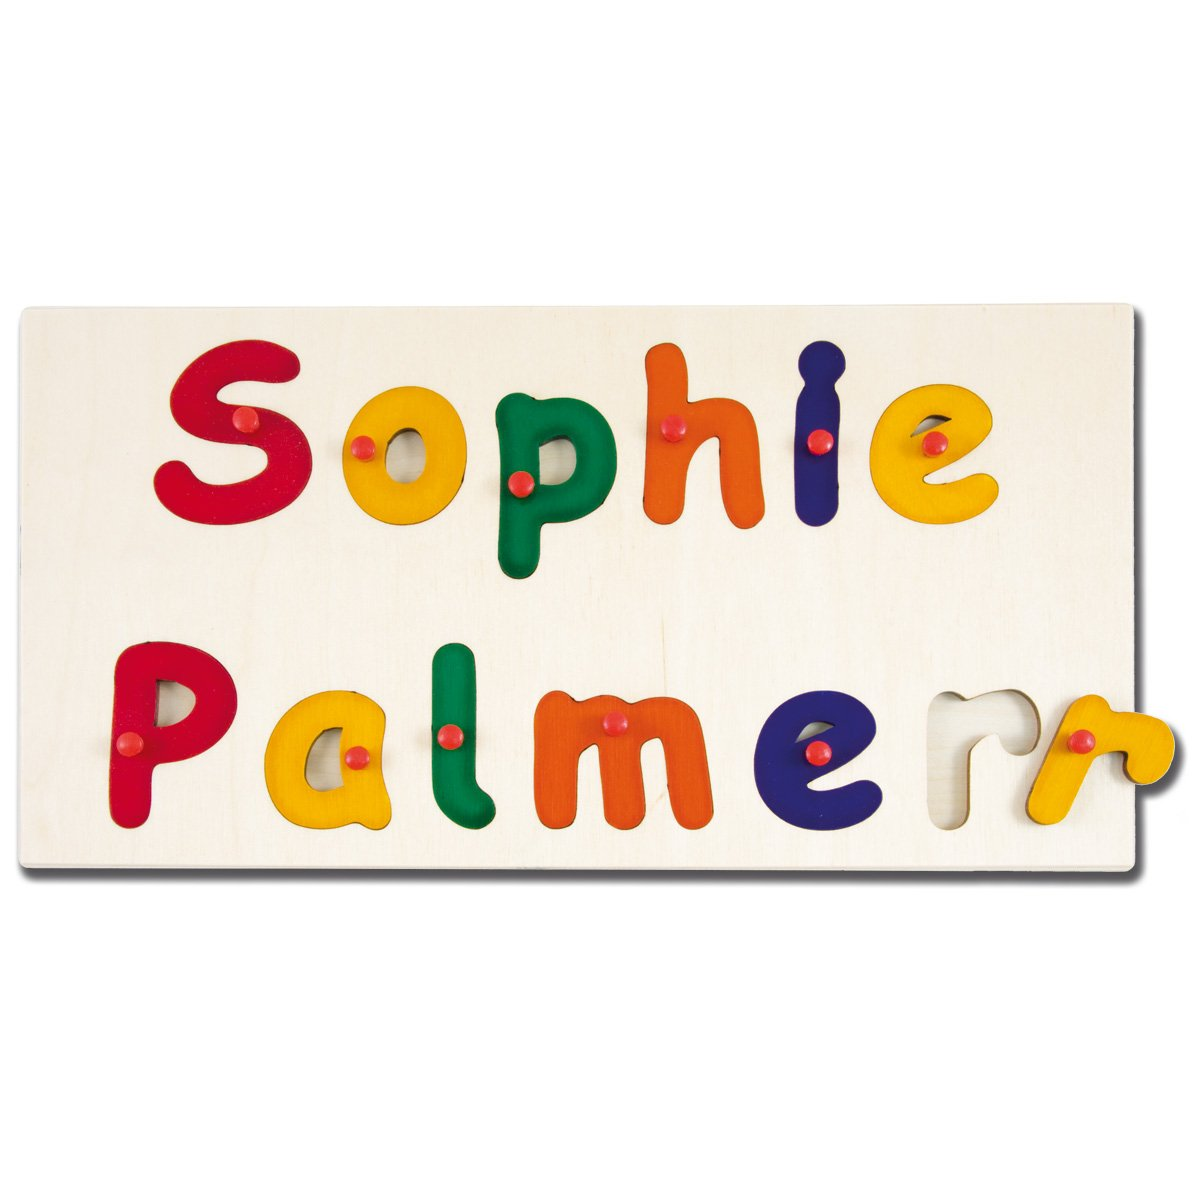 Toddler Name Puzzle Name Puzzle Wooden Name Puzzle Personalized Name Puzzle